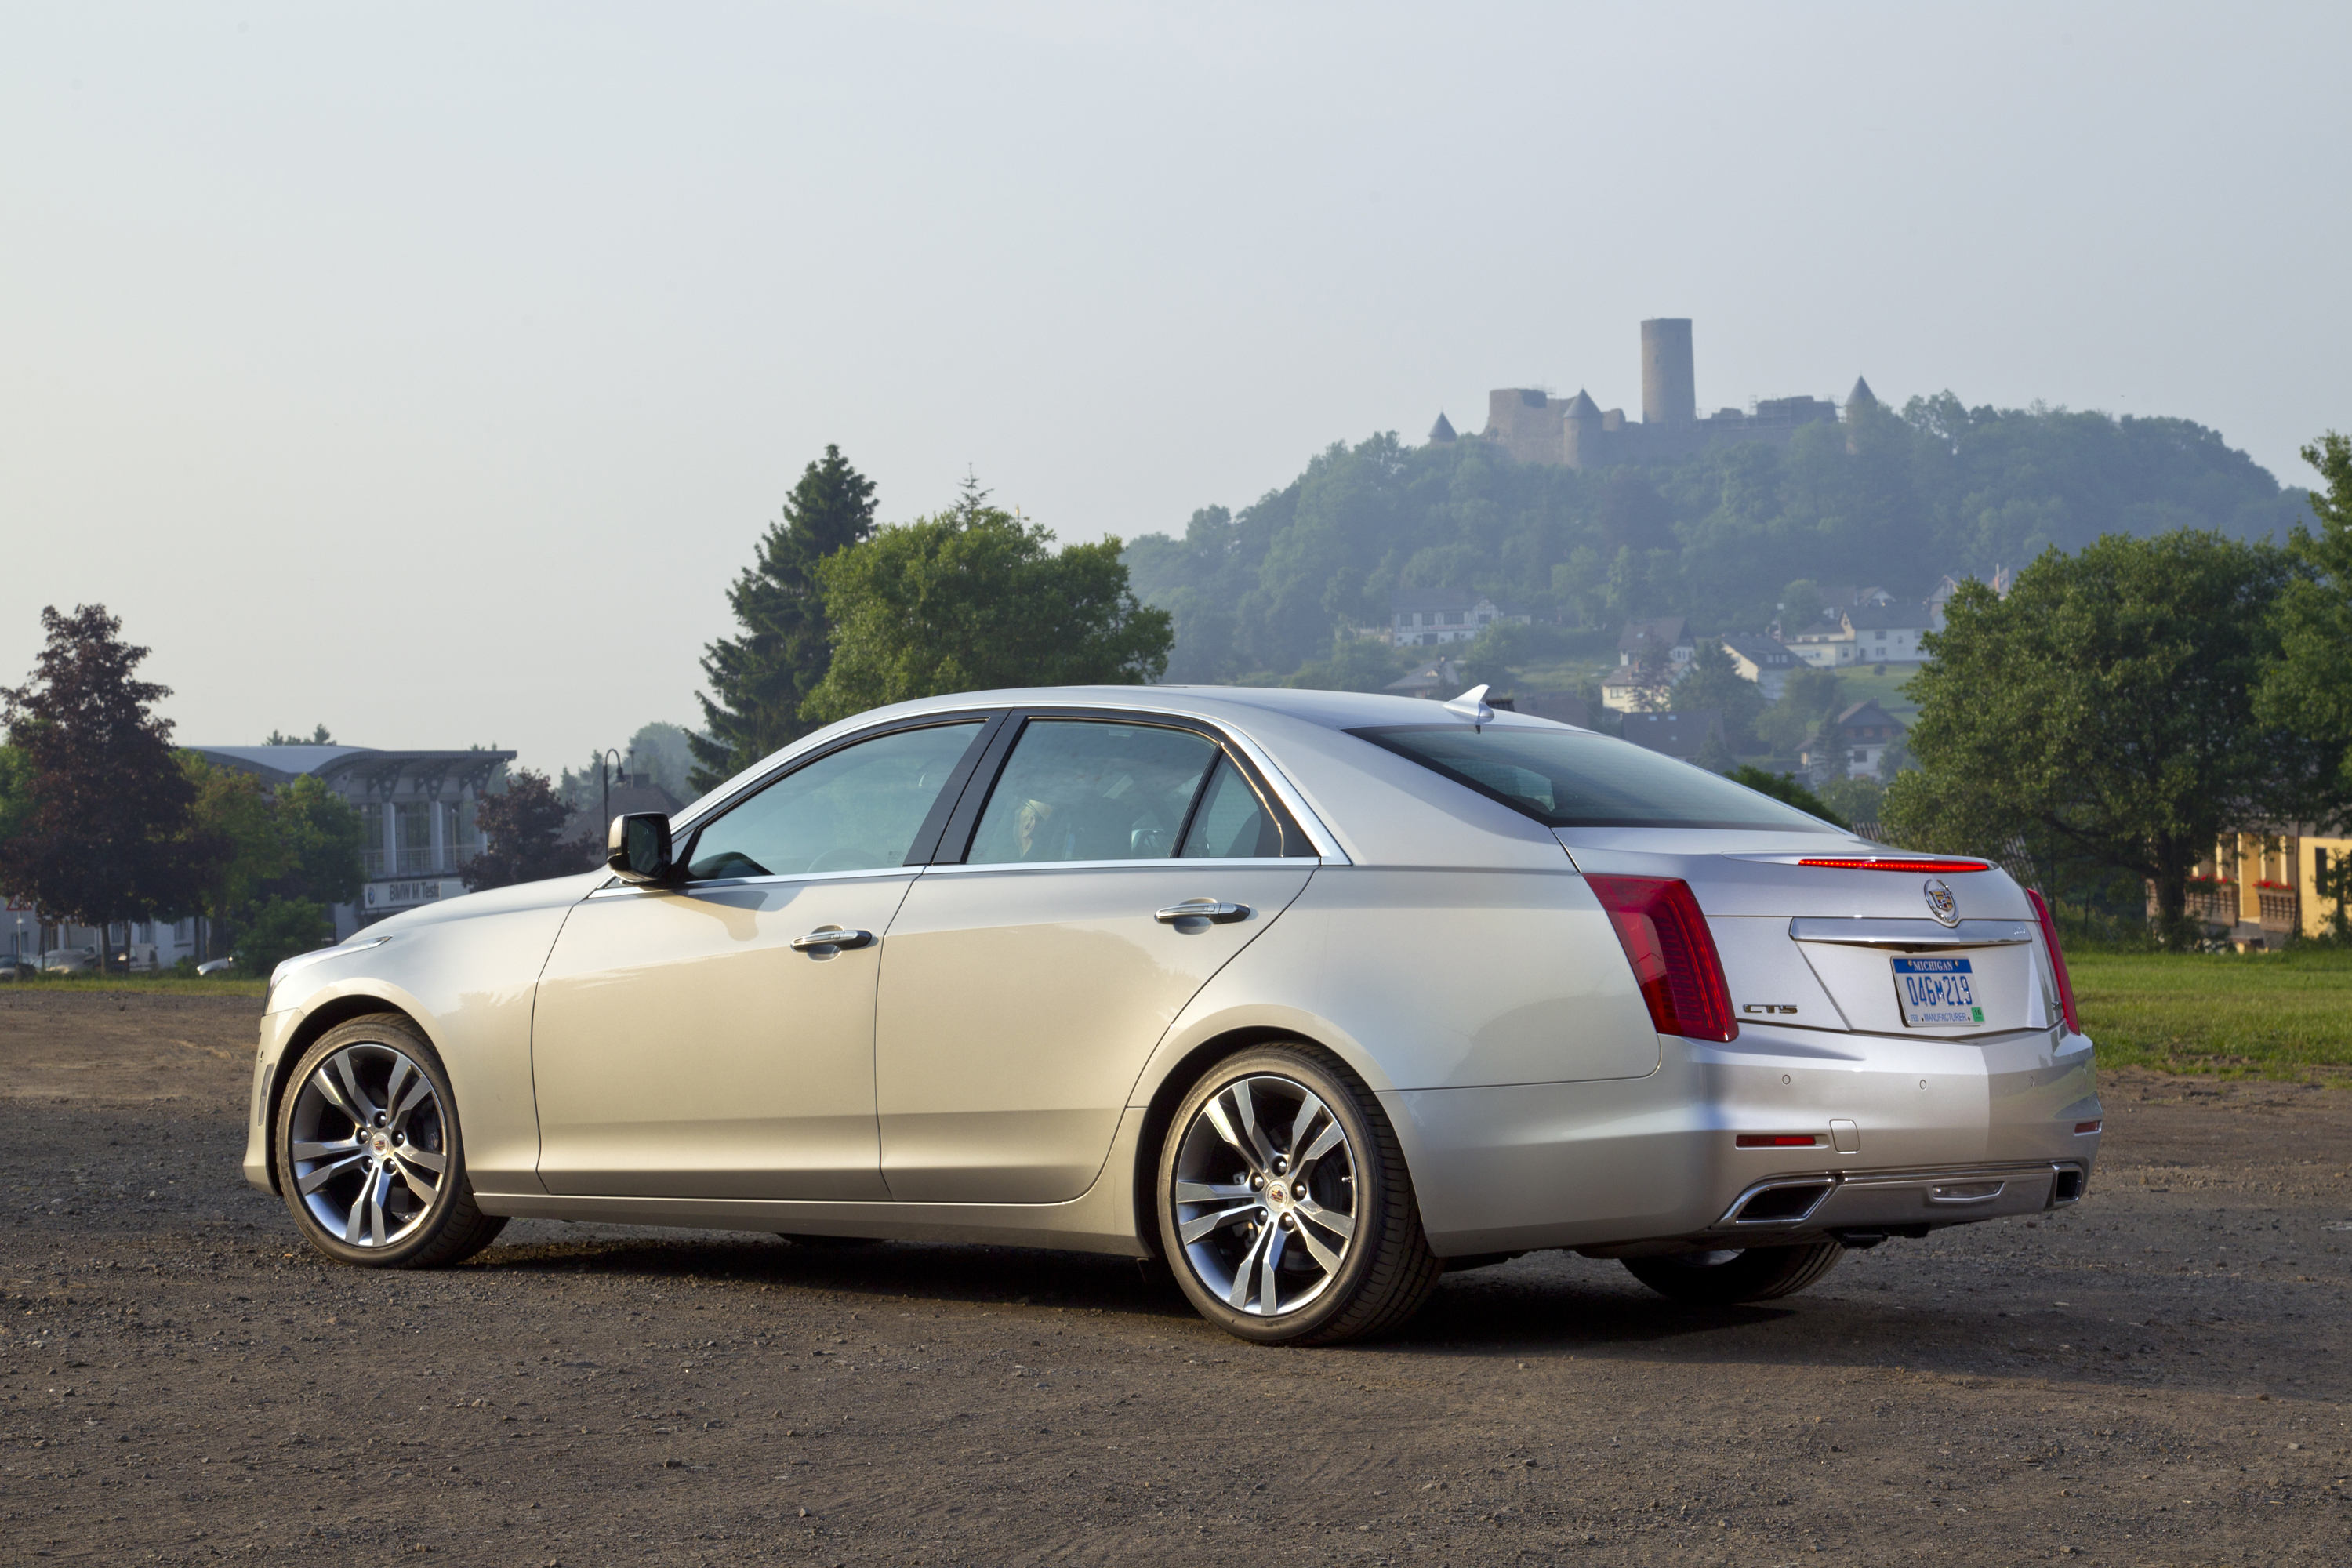 2014 cadillac cts sedan. Cars Review. Best American Auto & Cars Review